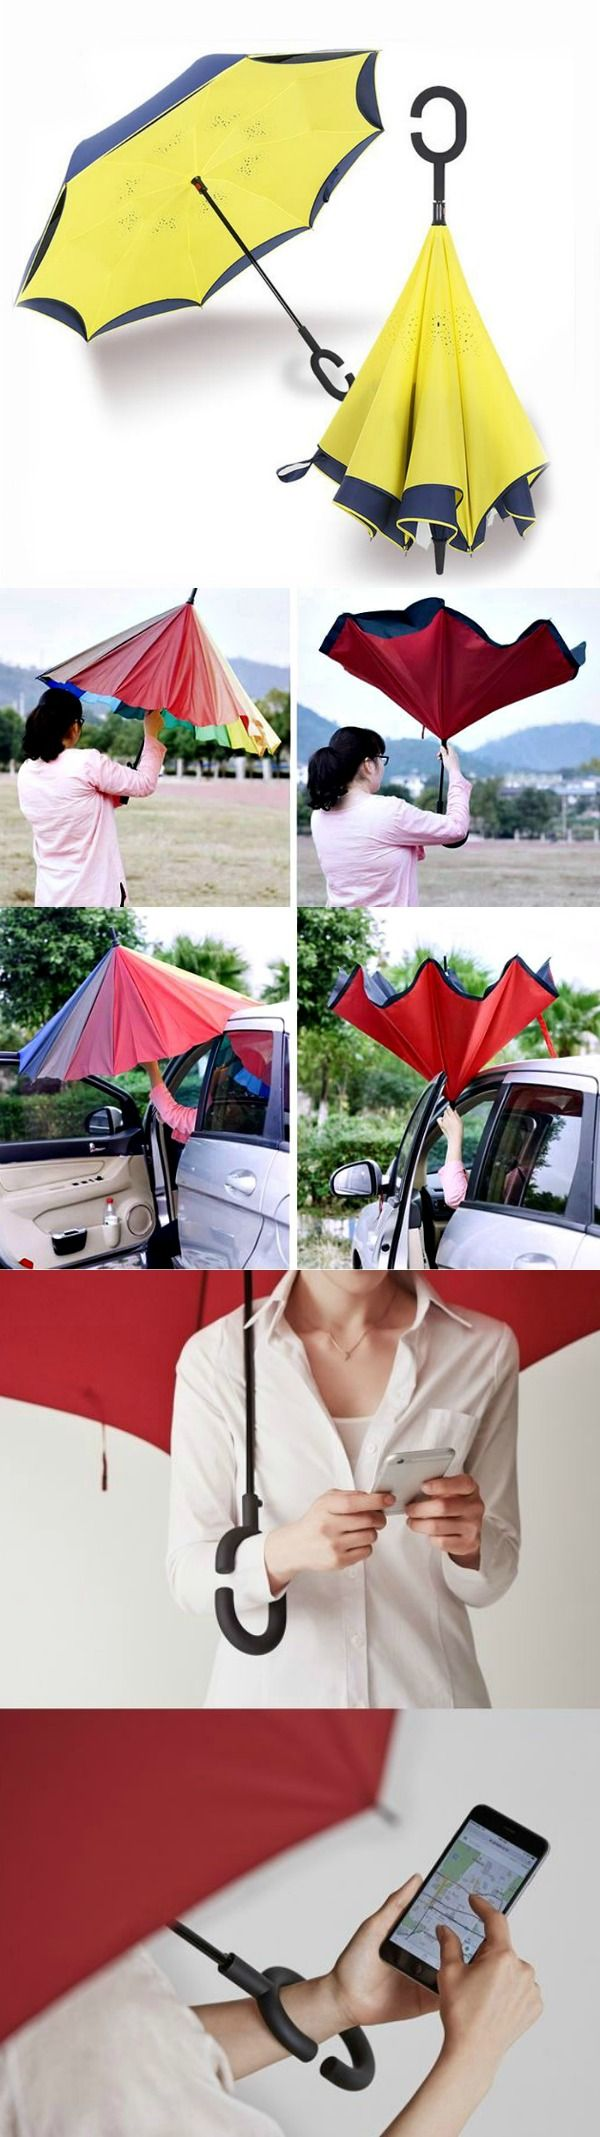 The Landrind Upside Down Umbrella inverts the umbrella design - the wet side of the umbrella faces inward when closed, exposing only the dry side.